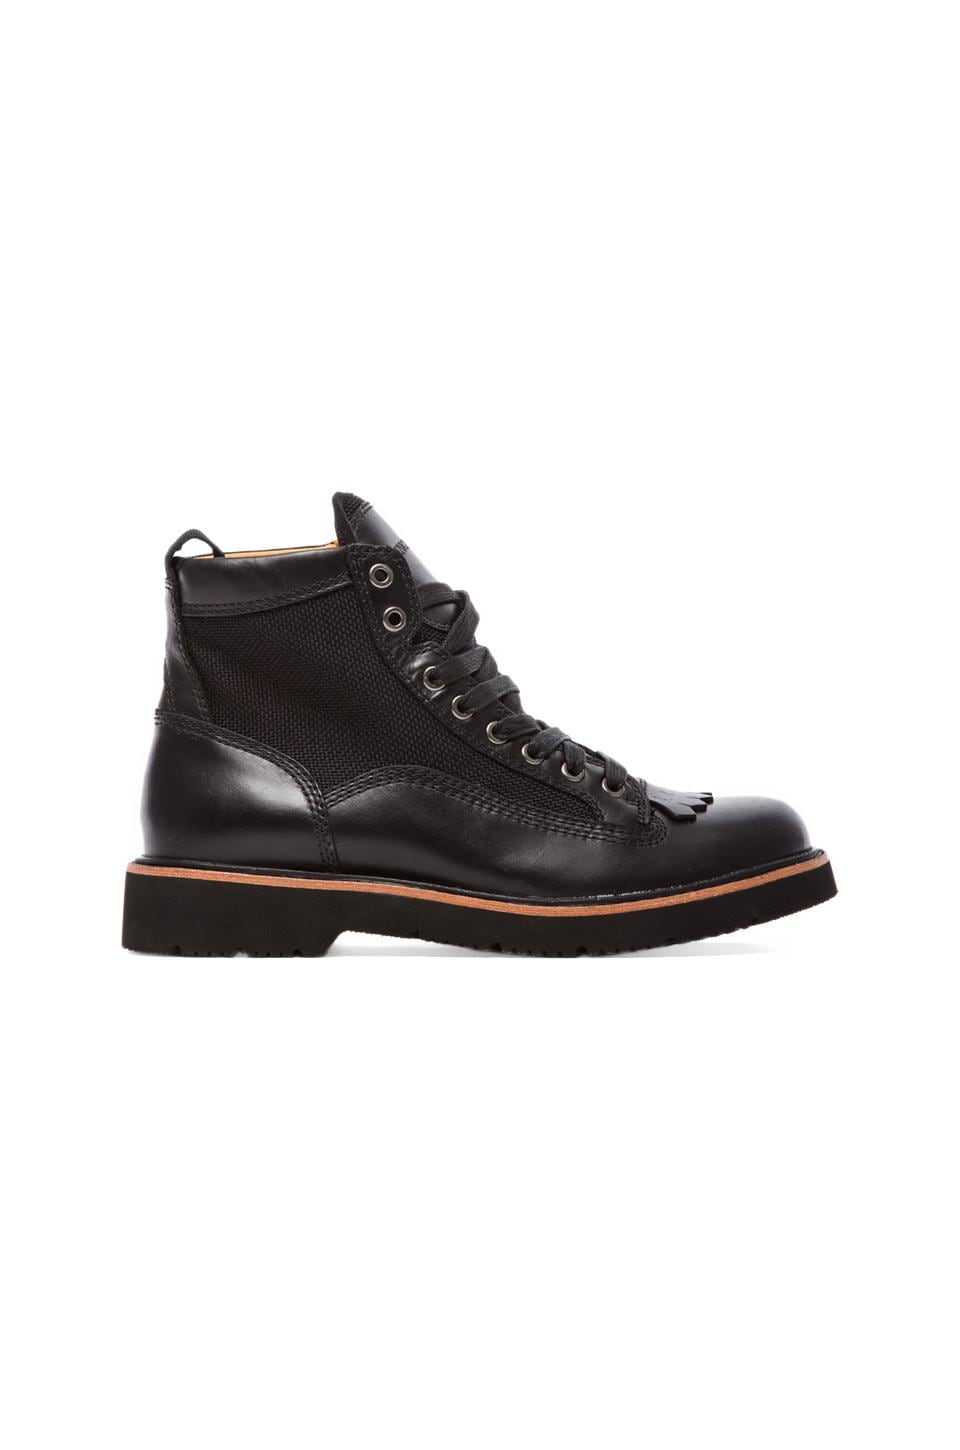 Abington Quarryville LT Boot in Black Quartz